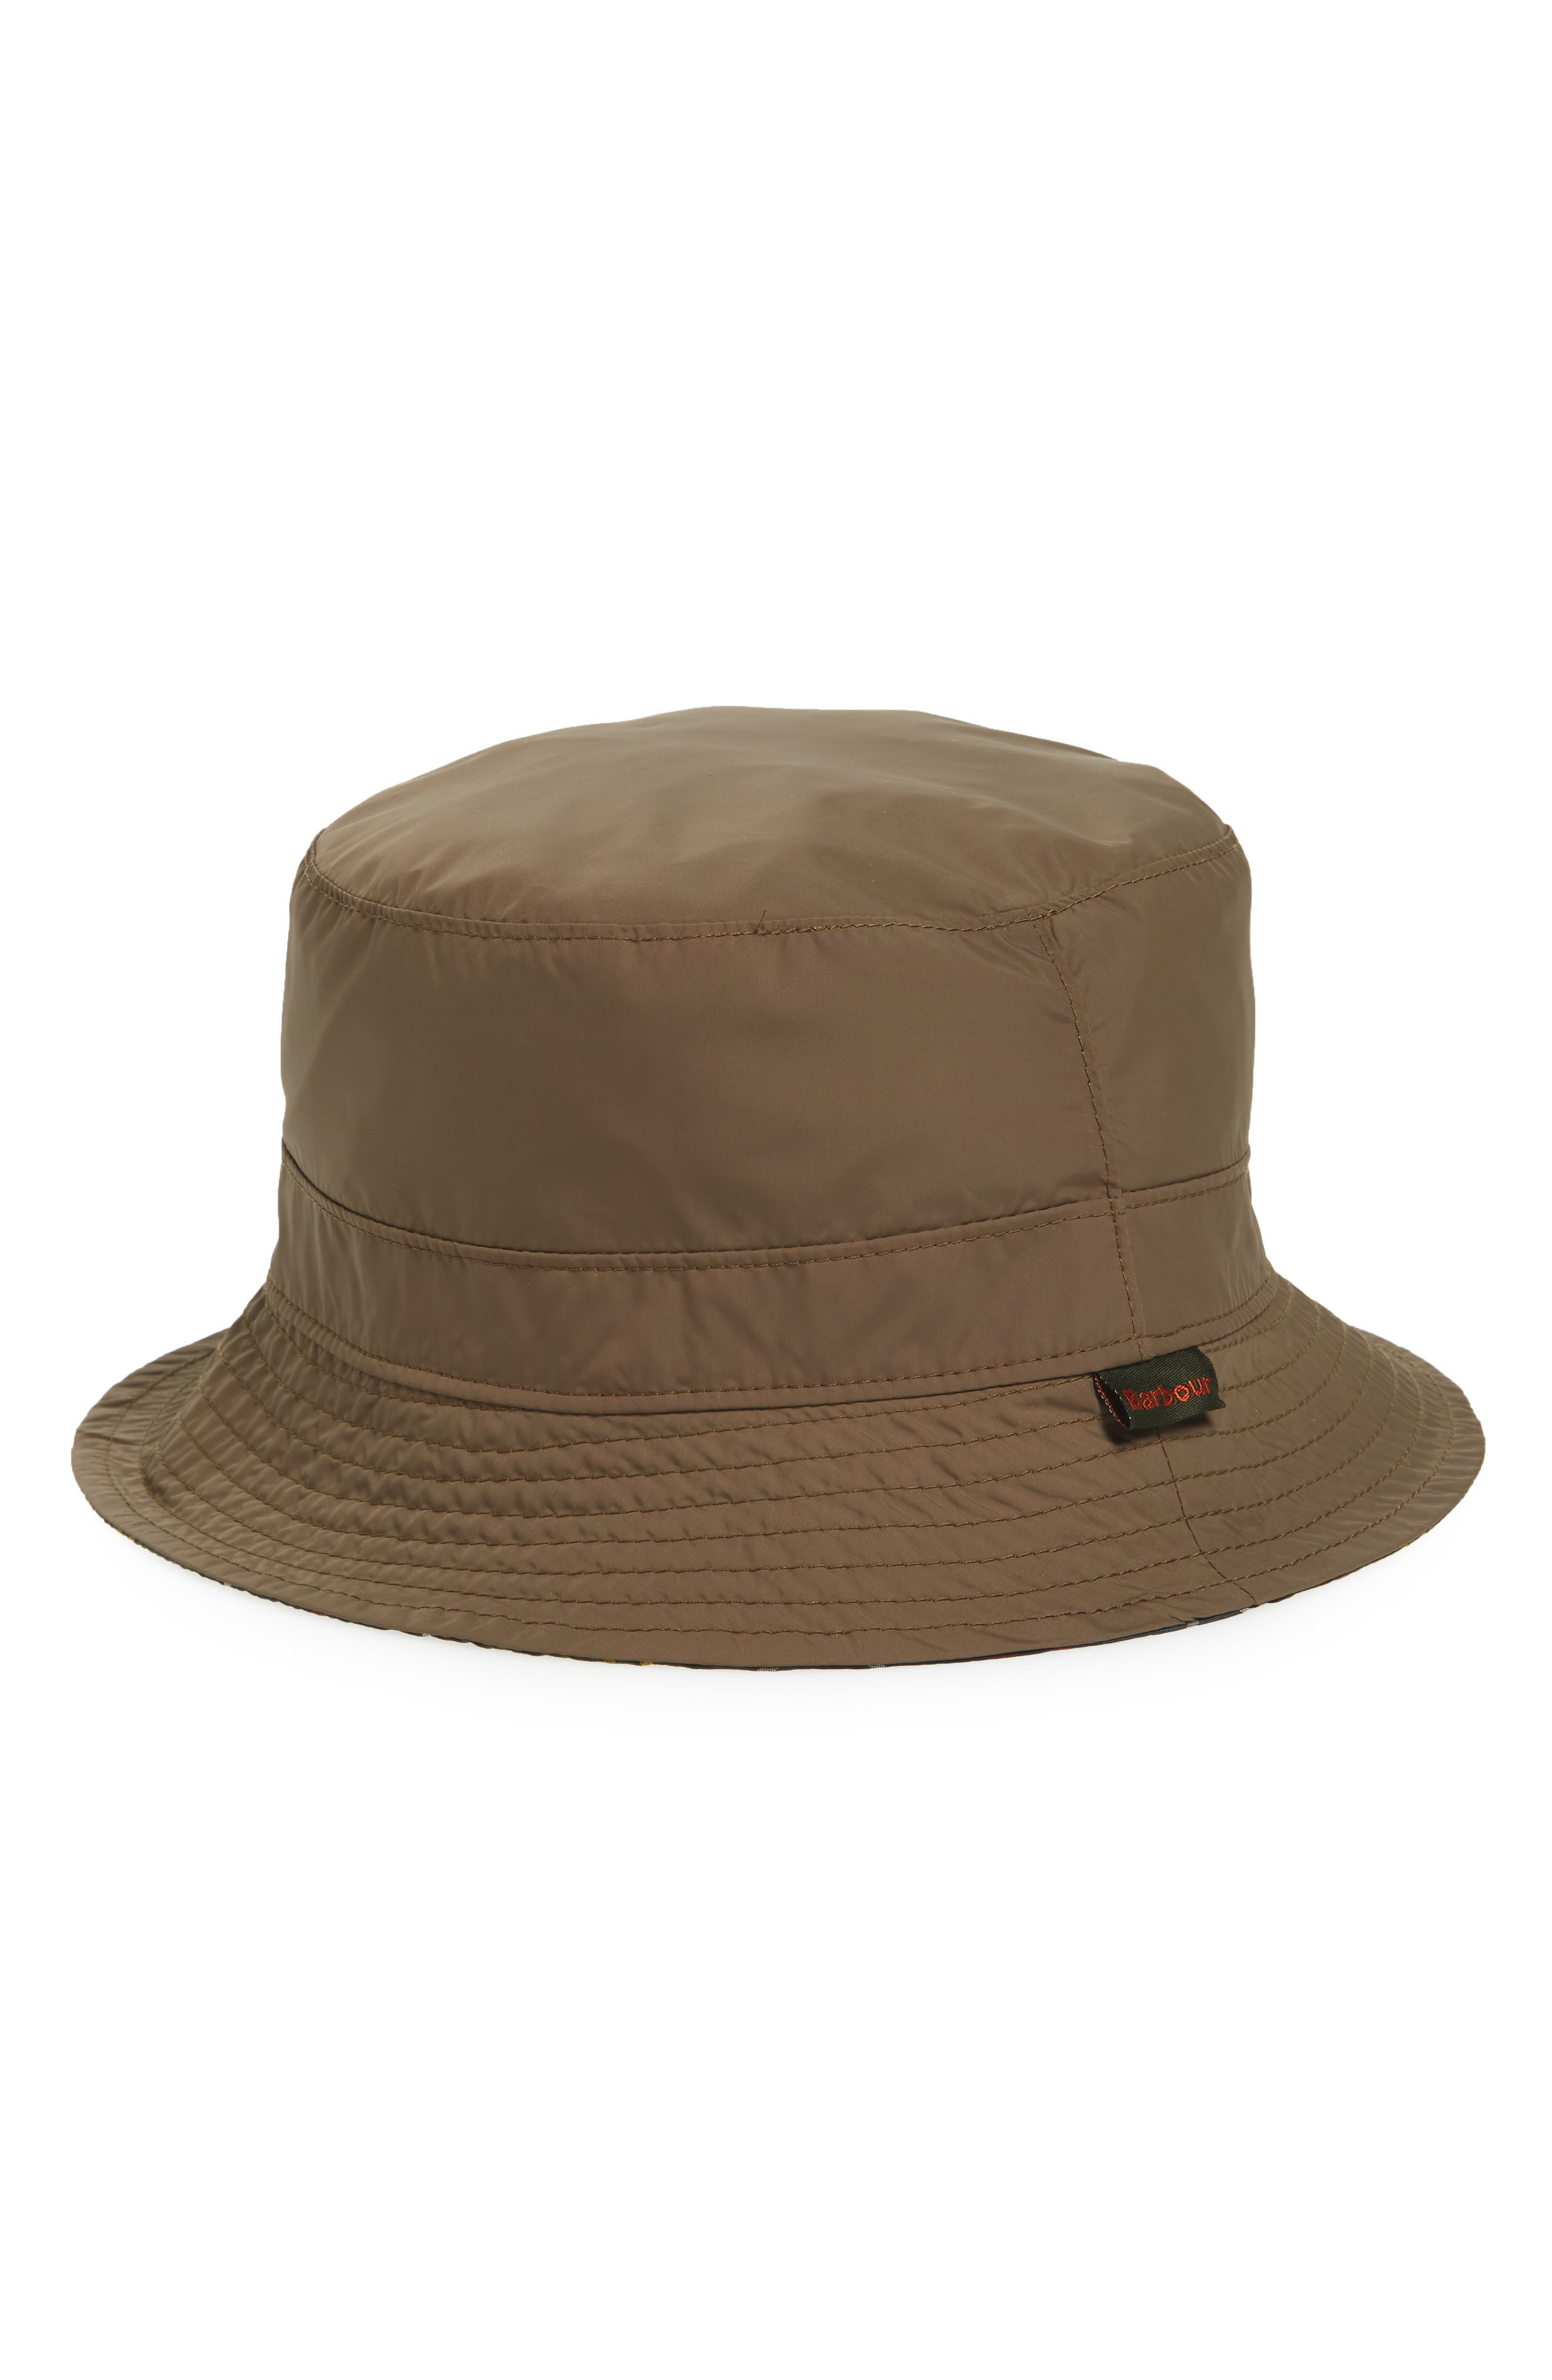 Reversible Bucket Hat,                             Alternate thumbnail 2, color,                             Classic